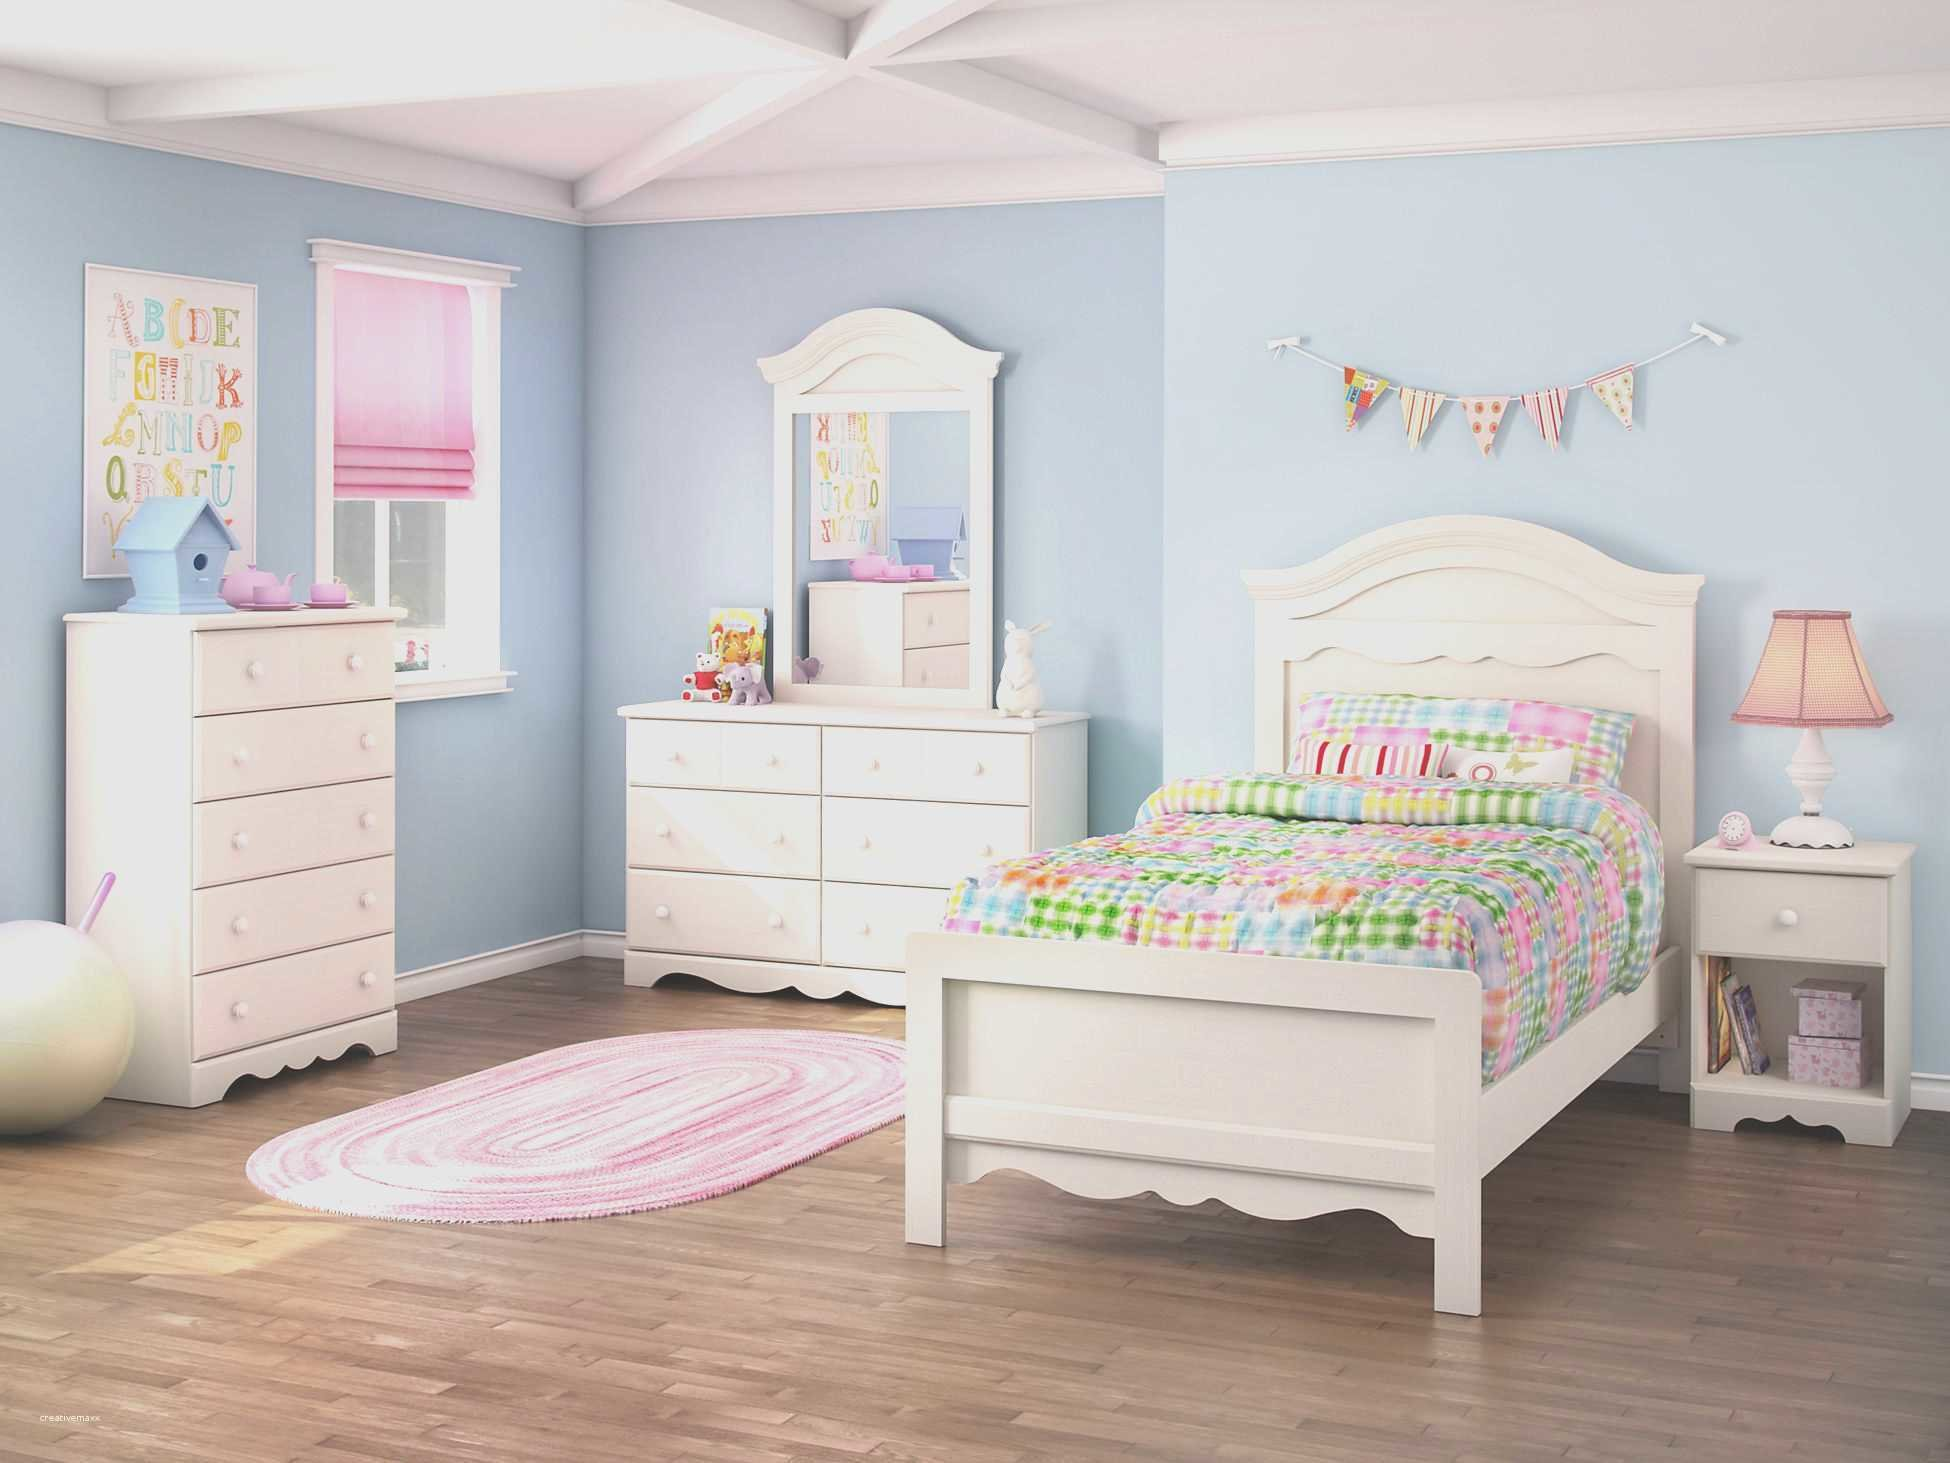 Best Bedroom Furniture Design For Girls Inspirational Bedroom With Pictures